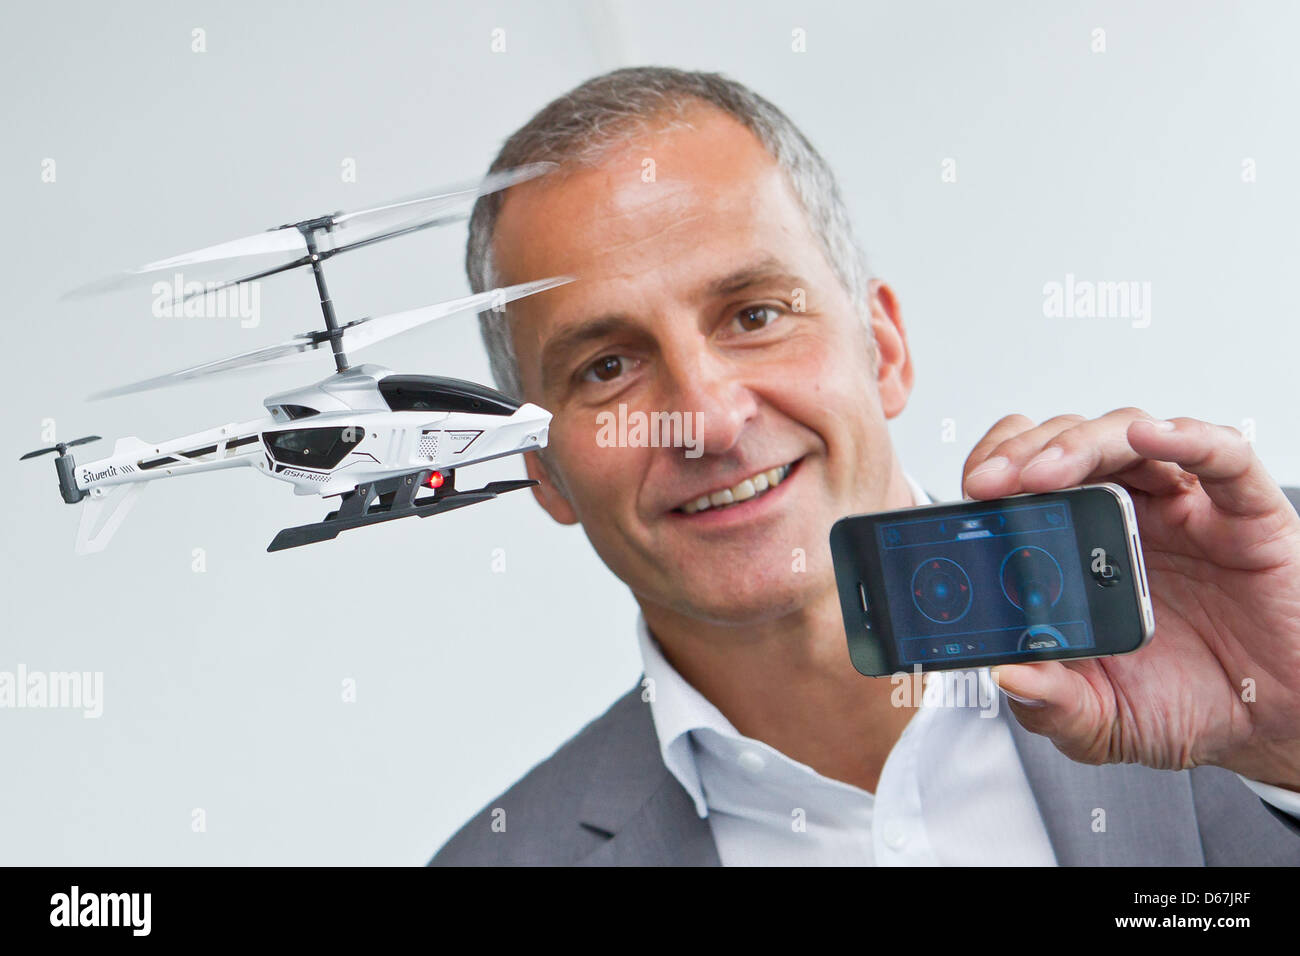 Stock Foto - The head of the Vedes AG, <b>Achim Weniger</b>, presents a toy ... - the-head-of-the-vedes-ag-achim-weniger-presents-a-toy-helicopter-by-D67JRF